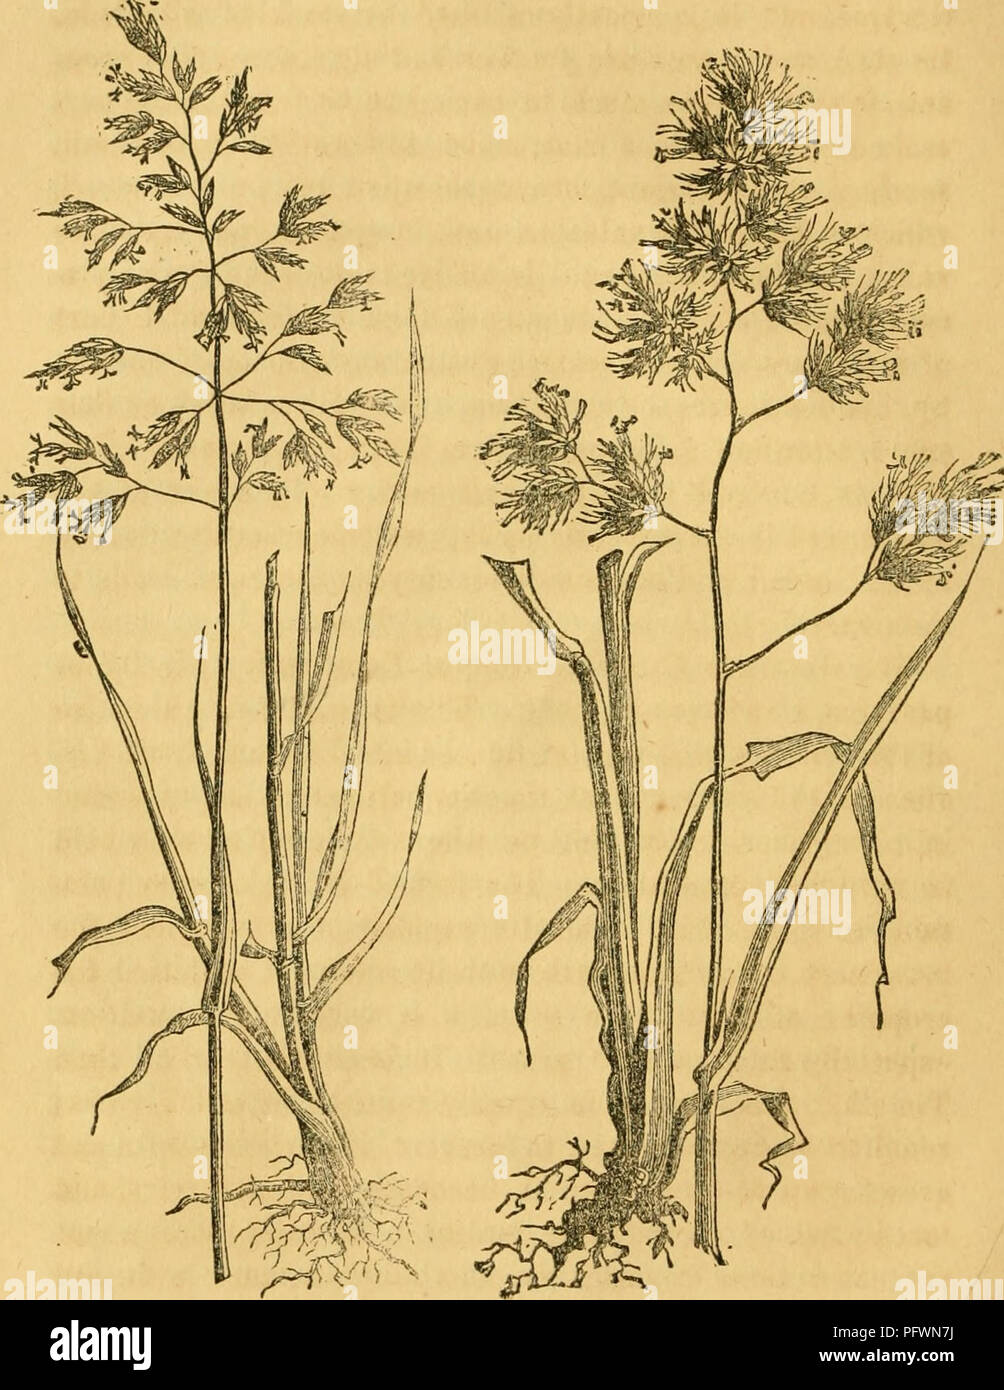 . Culture of the grasses. Grasses. CULTURE OP THE GRASSES.. Fig. 1. June Grass. Fig. 2. Orchard Grass. tiiree or four quarts of seed being used to the acre. Ifi spring the seeds germinate, when the sprouts are exceedingly fine and delicate. Stock is not allowed on it the first year. The Meadow Foxtail is also an excellent pasture grass. It somewhat resembles Timothy, but is earlier, has a softer spike, and thrives on all soils except the dryest. Its growth. Please note that these images are extracted from scanned page images that may have been digitally enhanced for readability - coloration an Stock Photo